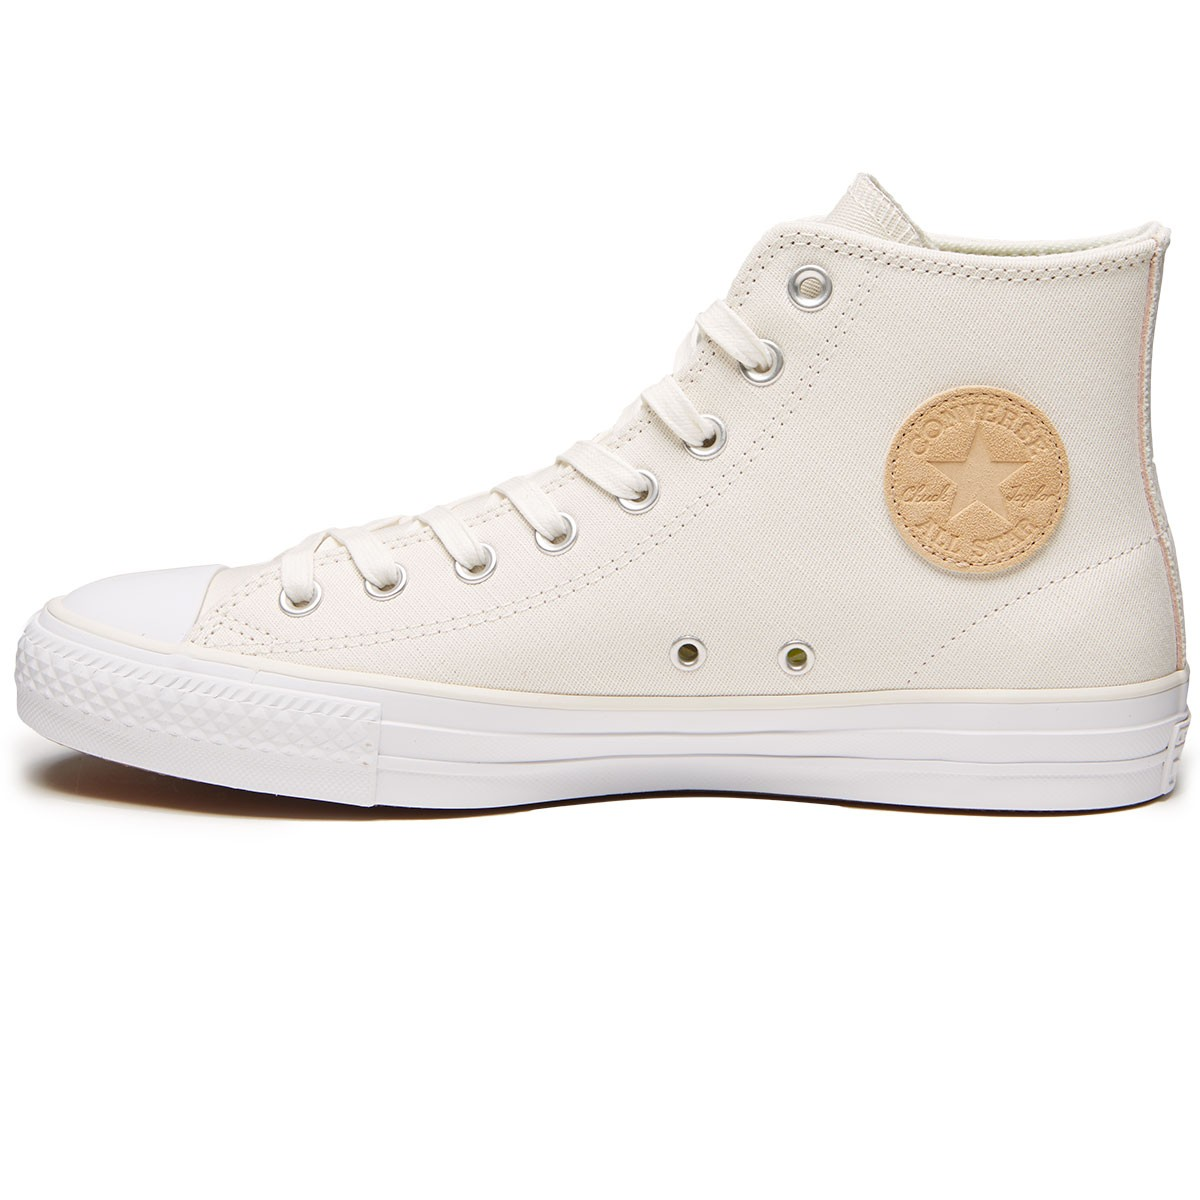 c5260385332e Converse CTAS Pro Suede Backed Twill Shoes